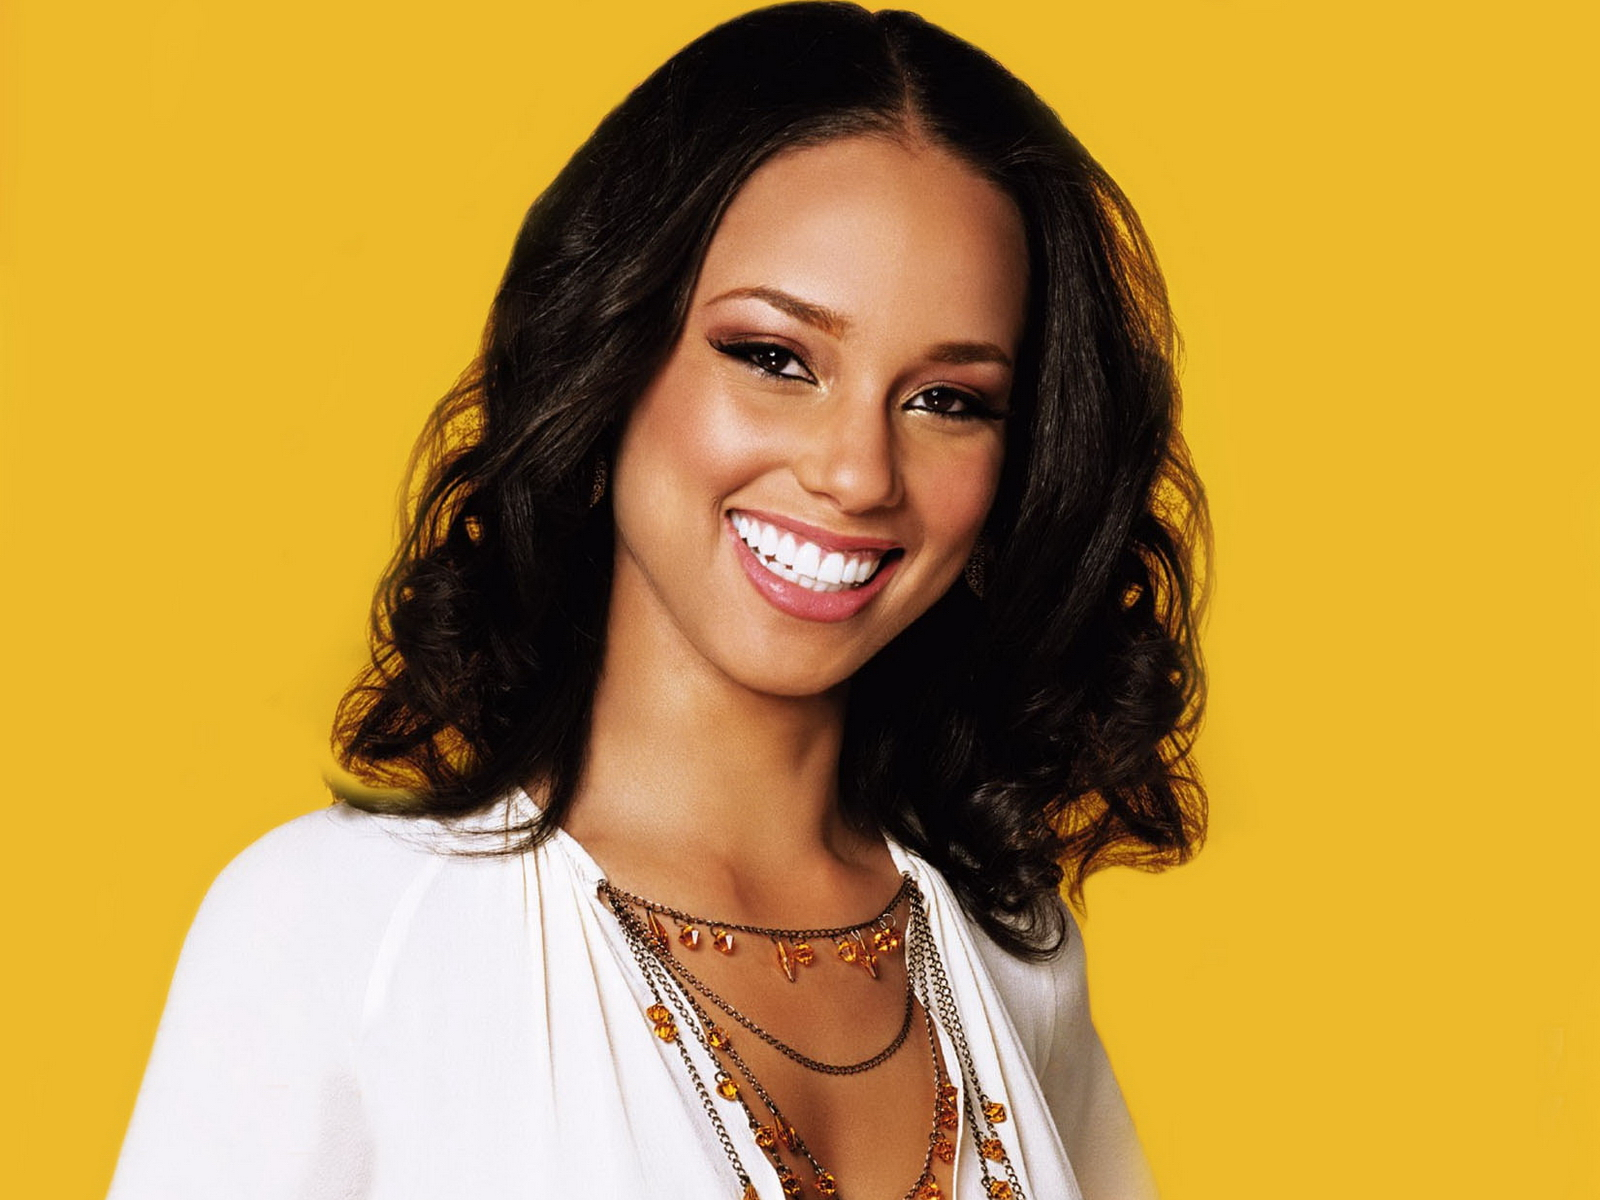 Alicia keys free stock photos reviewed by mas pono on rating 4 5